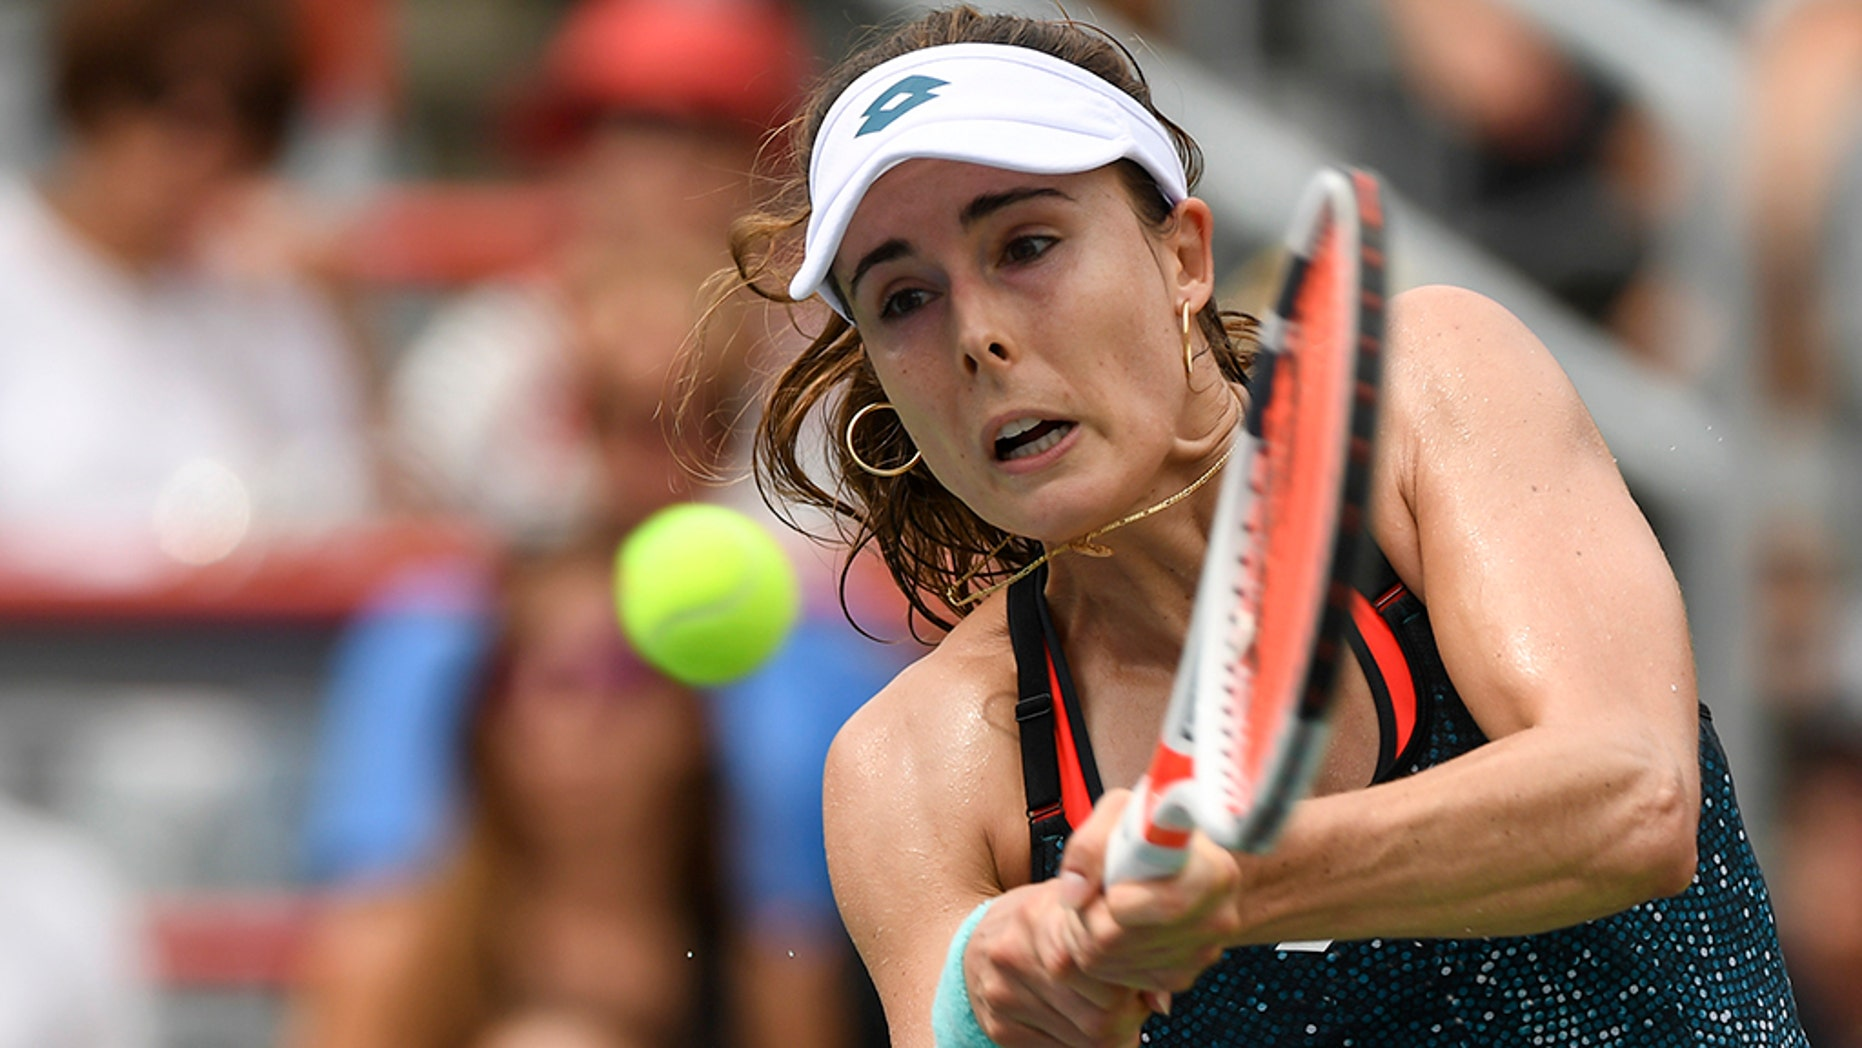 The US Open was accused of sexism after Alizé Cornet was hit with a code violation after briefly rearranging her top during a match on Tuesday, August 28, 2018.